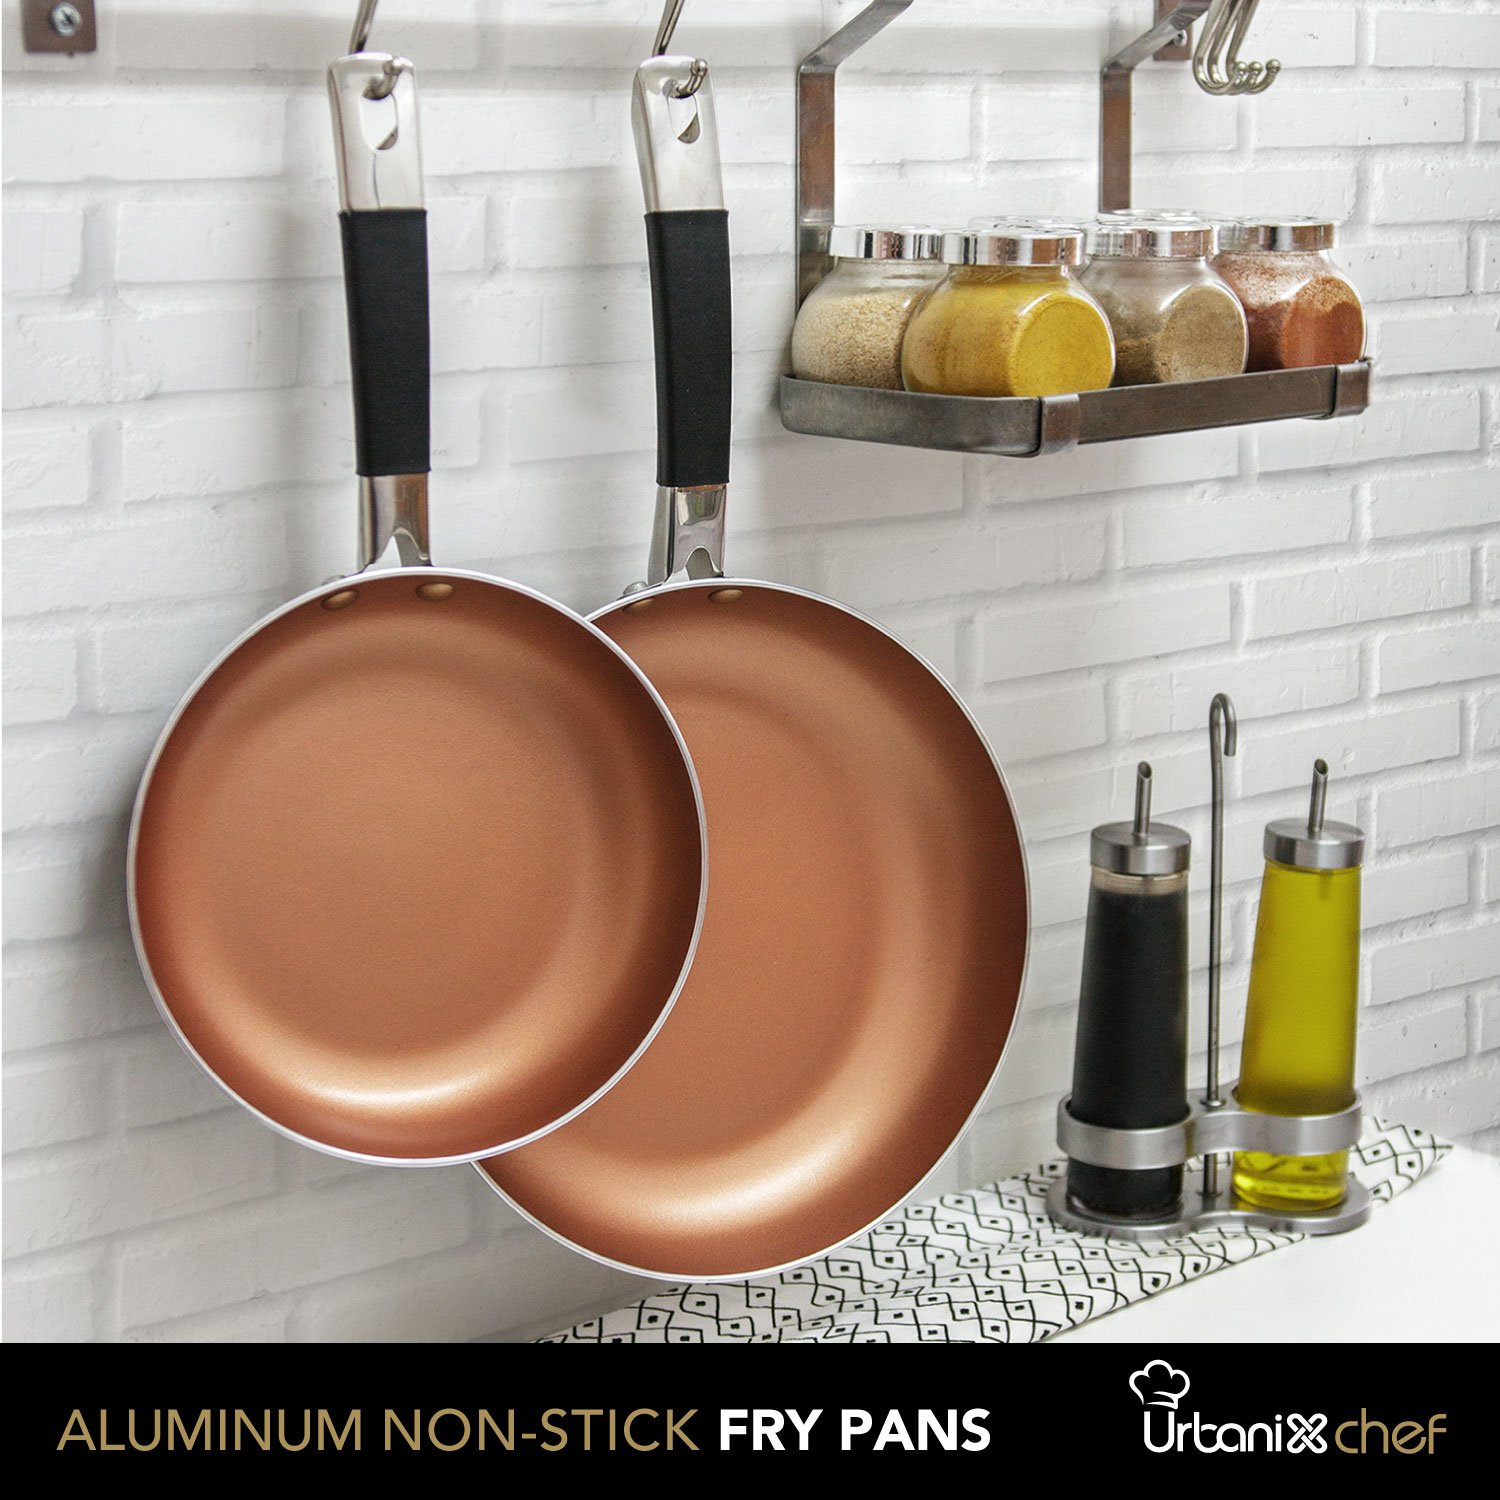 UrbanixChef Frying Pans . Superior German Greblon Non-stick Coating Copper Color. 2 Pcs - 8 and 10 Inch.100% PFOA Free,Induction Compatible , Oven Safe.  Bonus 3 pc.11 Inch Pan Protectors by URBANIX (Image #6)